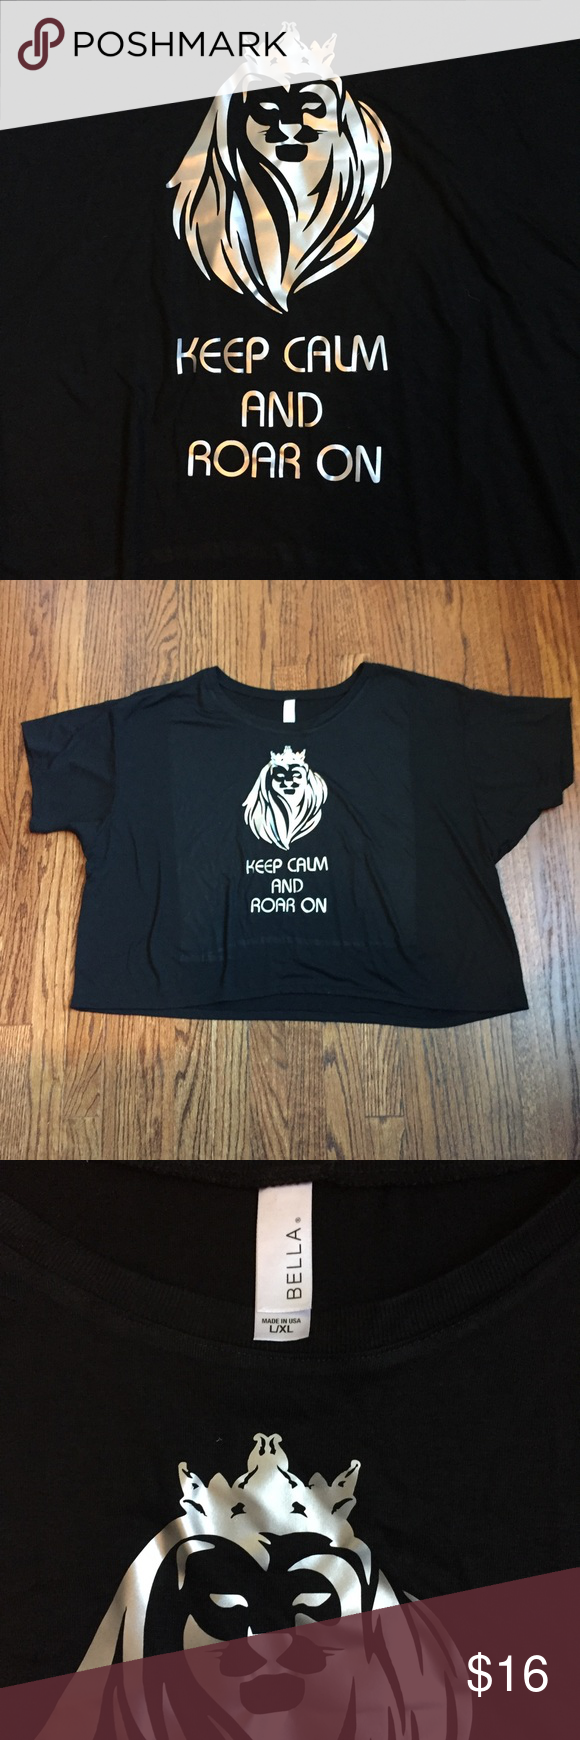 """Lion top Lion top that says """"keep calm and roar on"""". Size Large/extra Large (I feel like its more of an xl). Bella brand Bella Tops"""